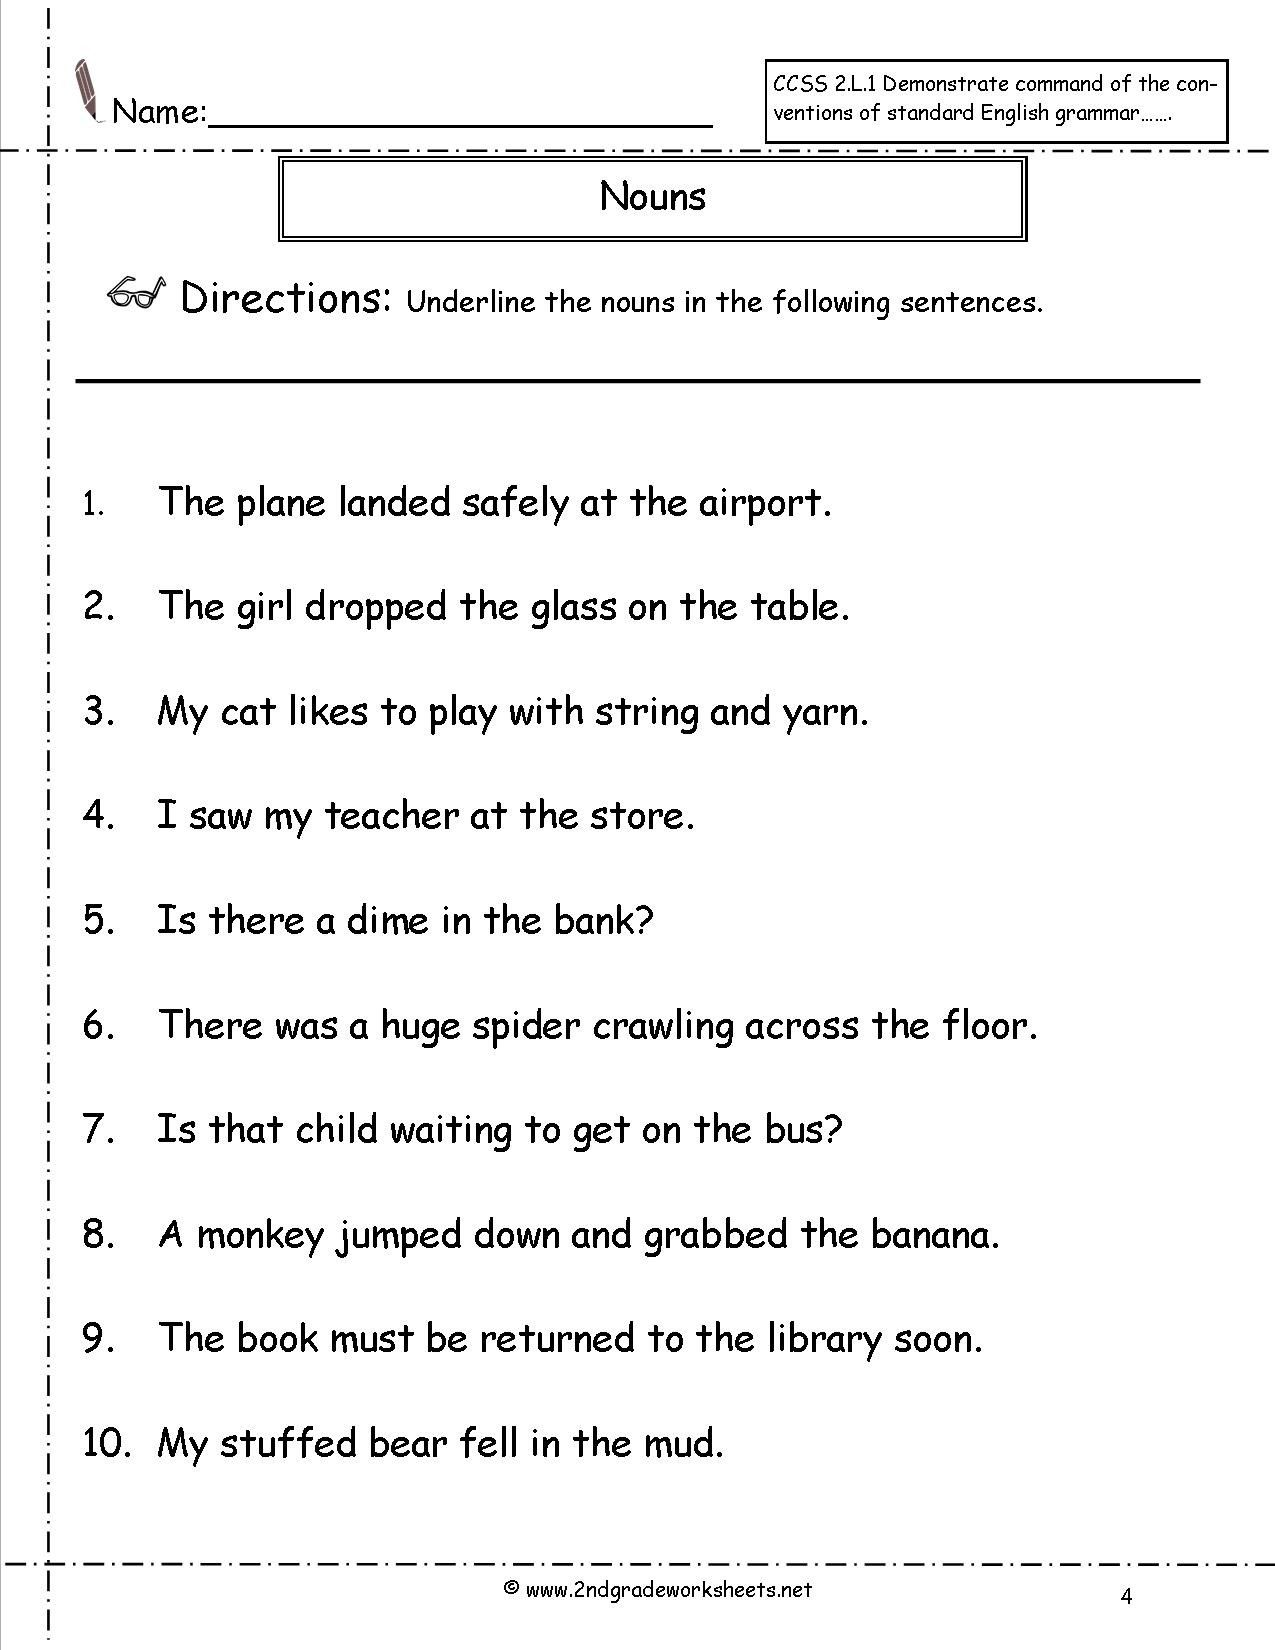 Free Printable 10th Grade Grammar Worksheets Learning